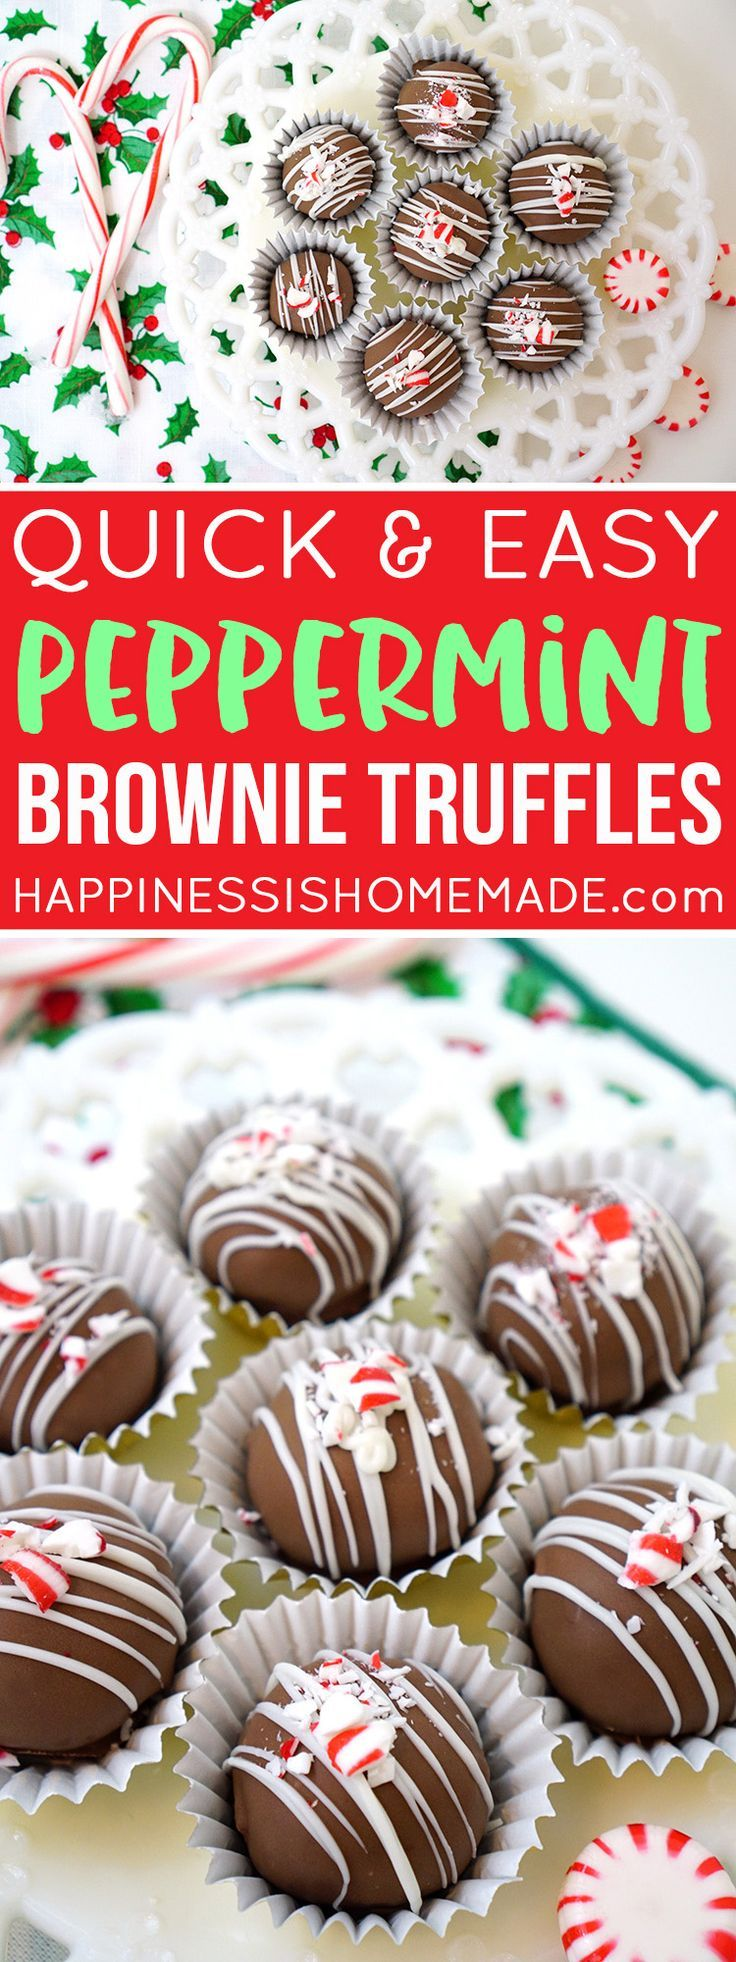 These easy peppermint brownie truffles are perfect for holiday parties and potlucks, and they make a great Christmas gift idea for friends, neighbors, and teachers!